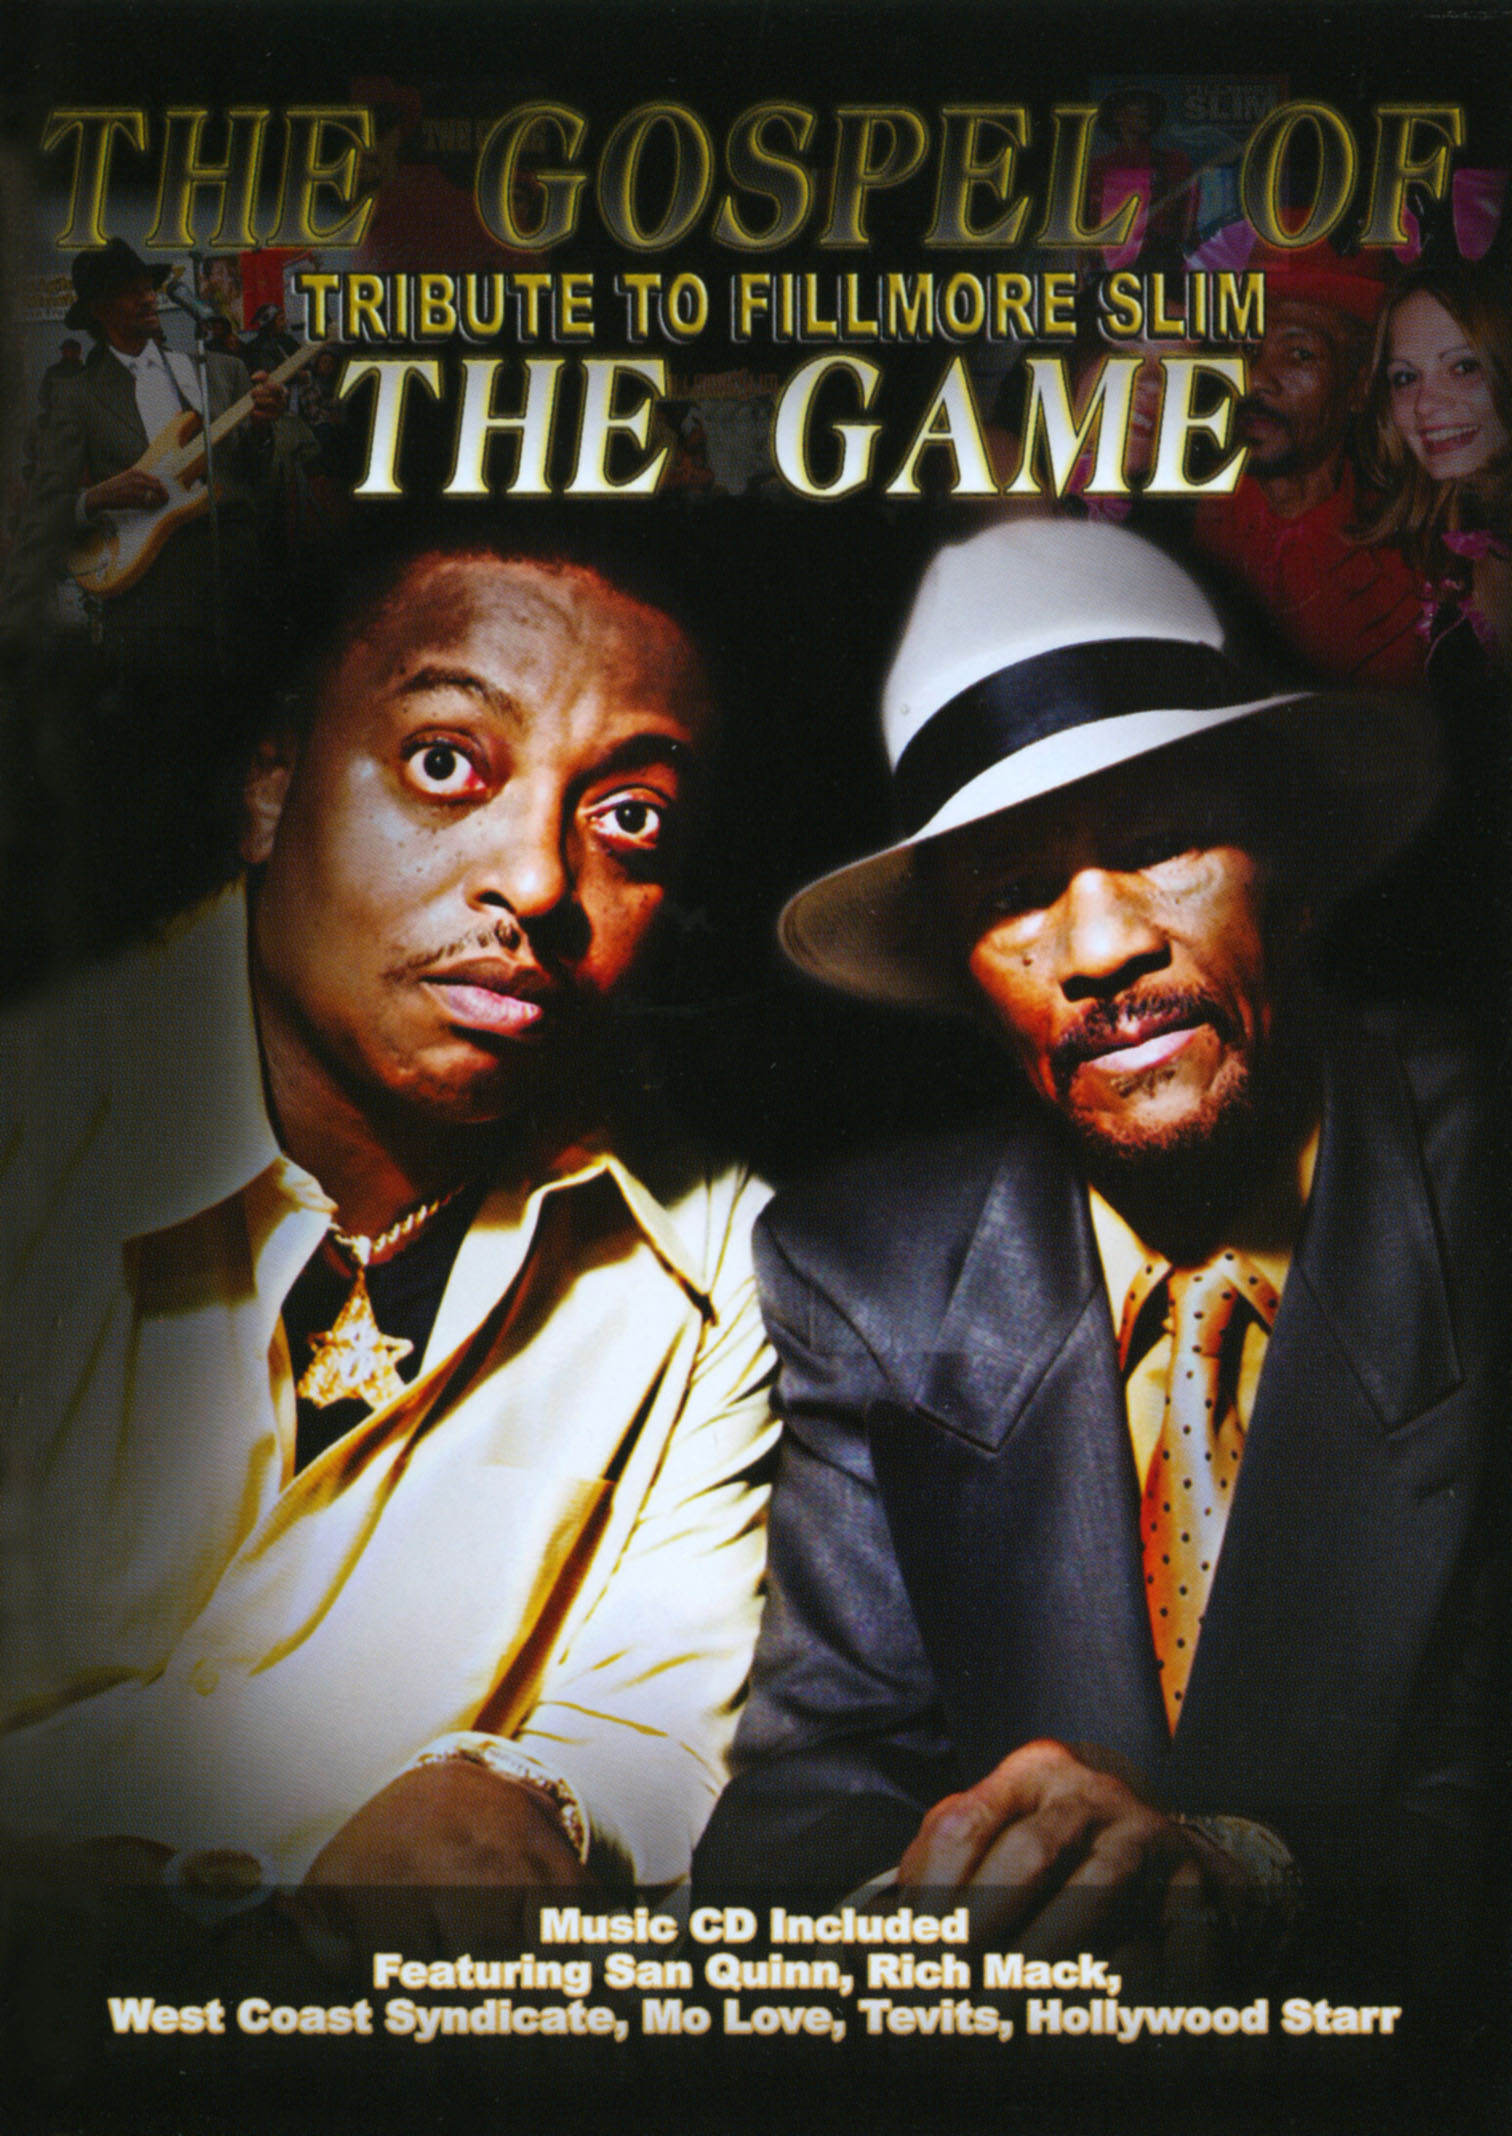 The Gospel of The Game: Tribute to Fillmore Slim